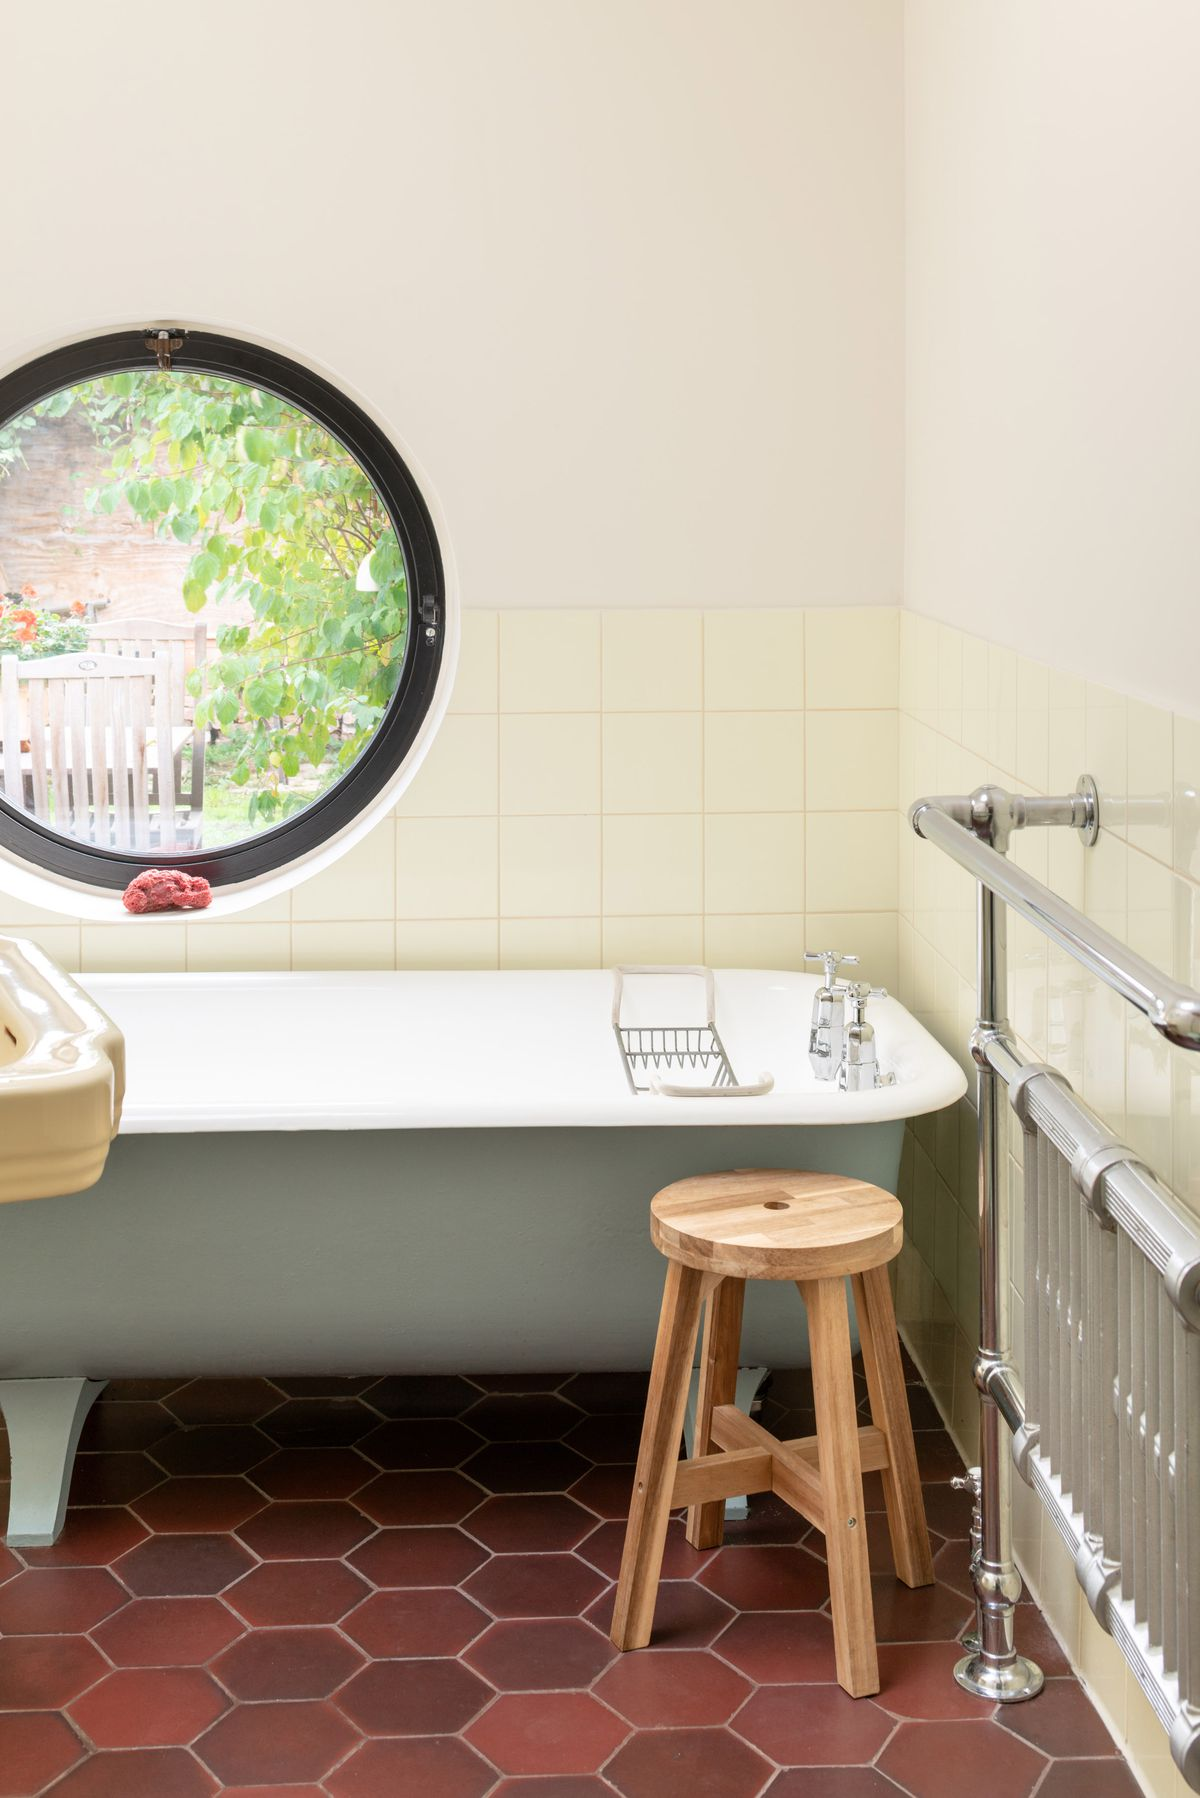 Bathroom with pale yellow tiles